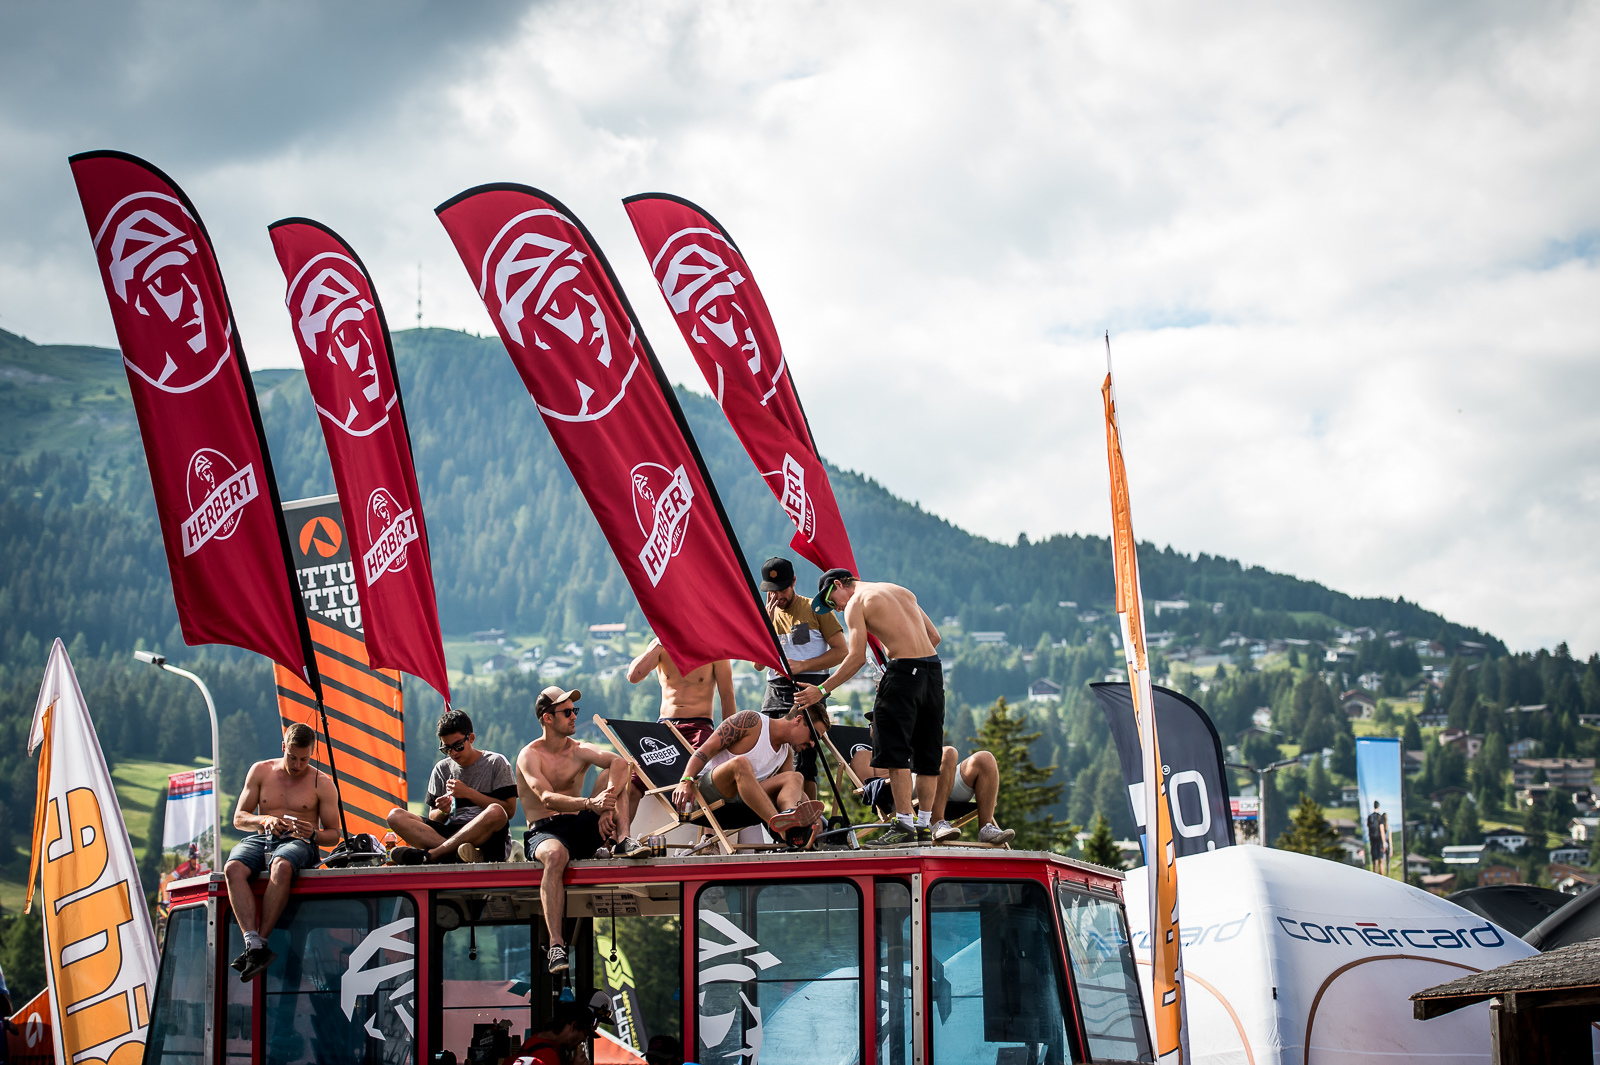 Summer holidays at the races in Lenzerheide...